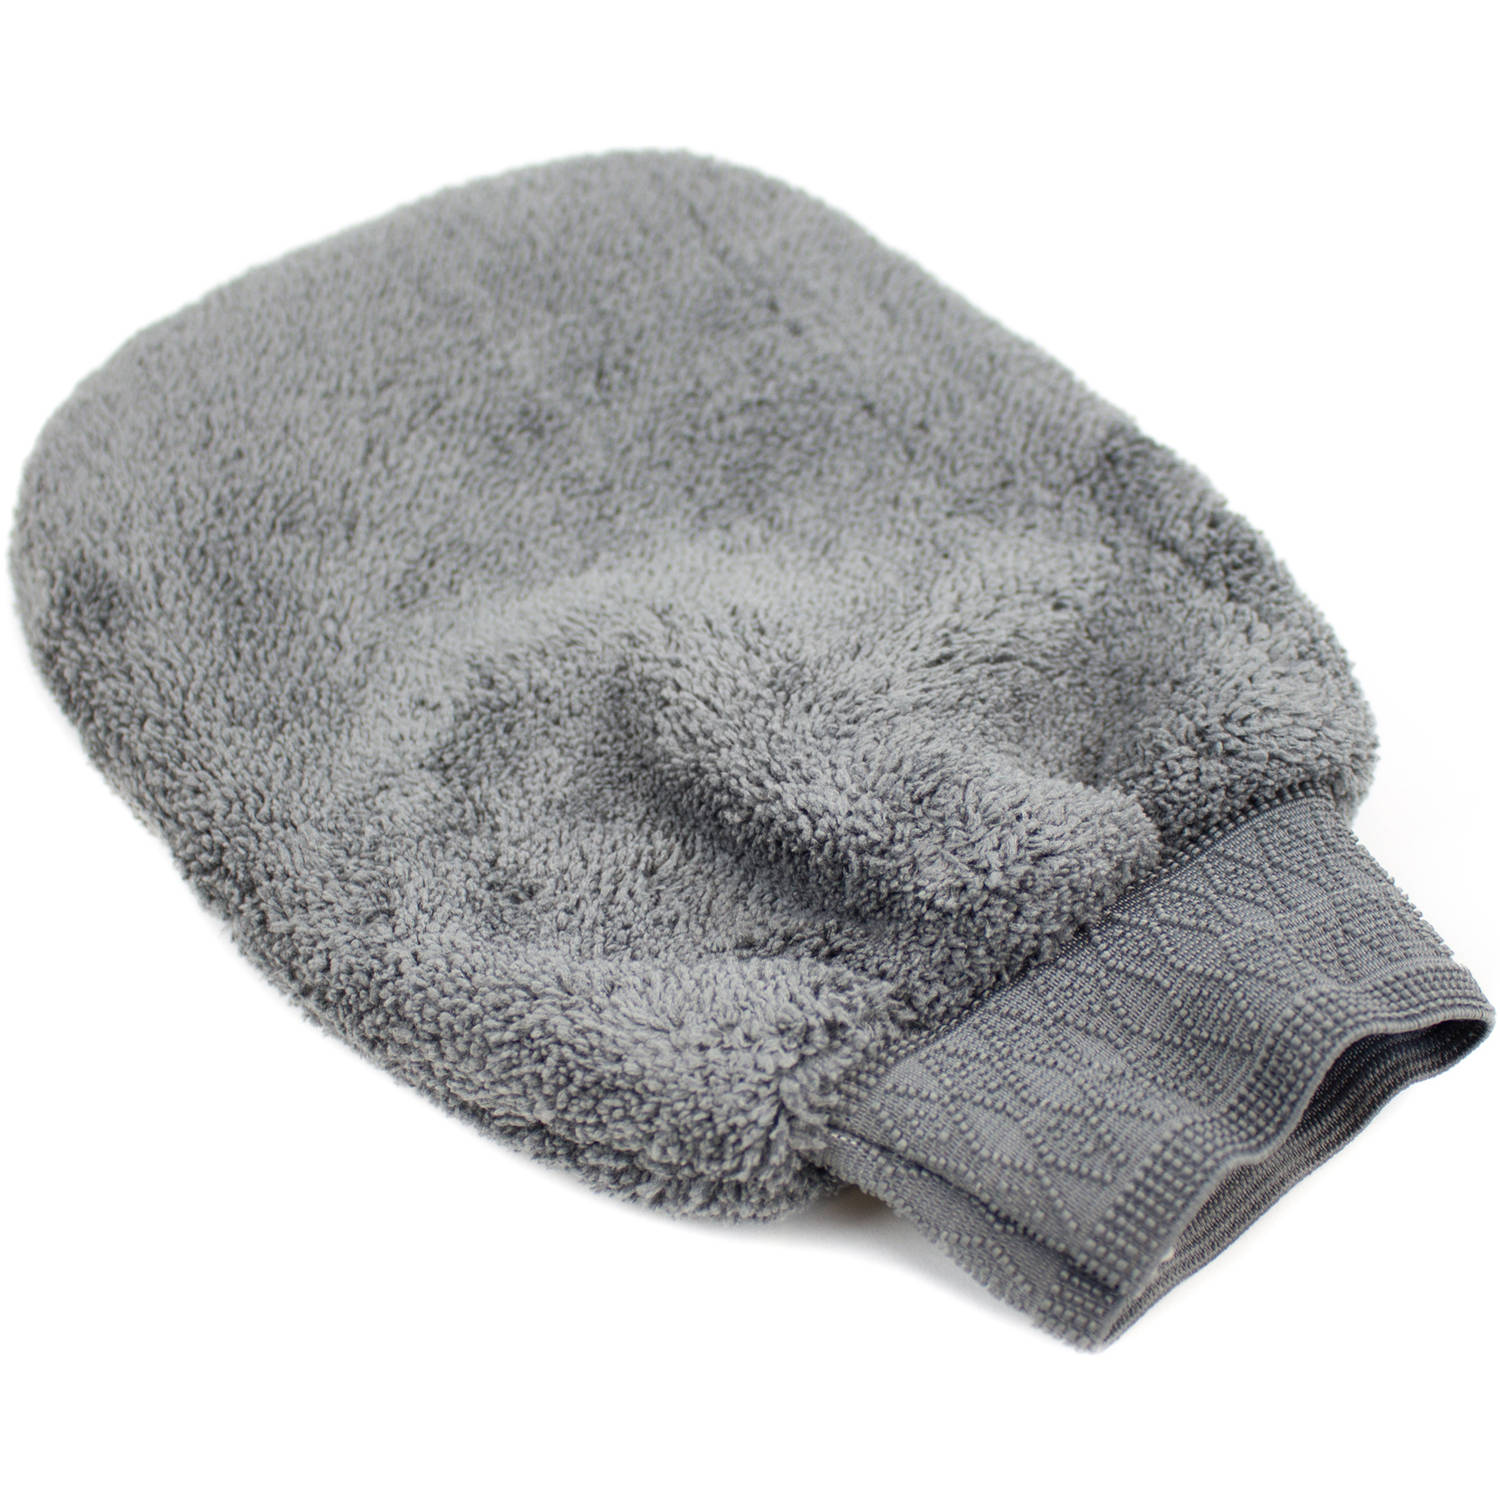 Zwipes Microfiber Stainless Steel Cleaning Mitt